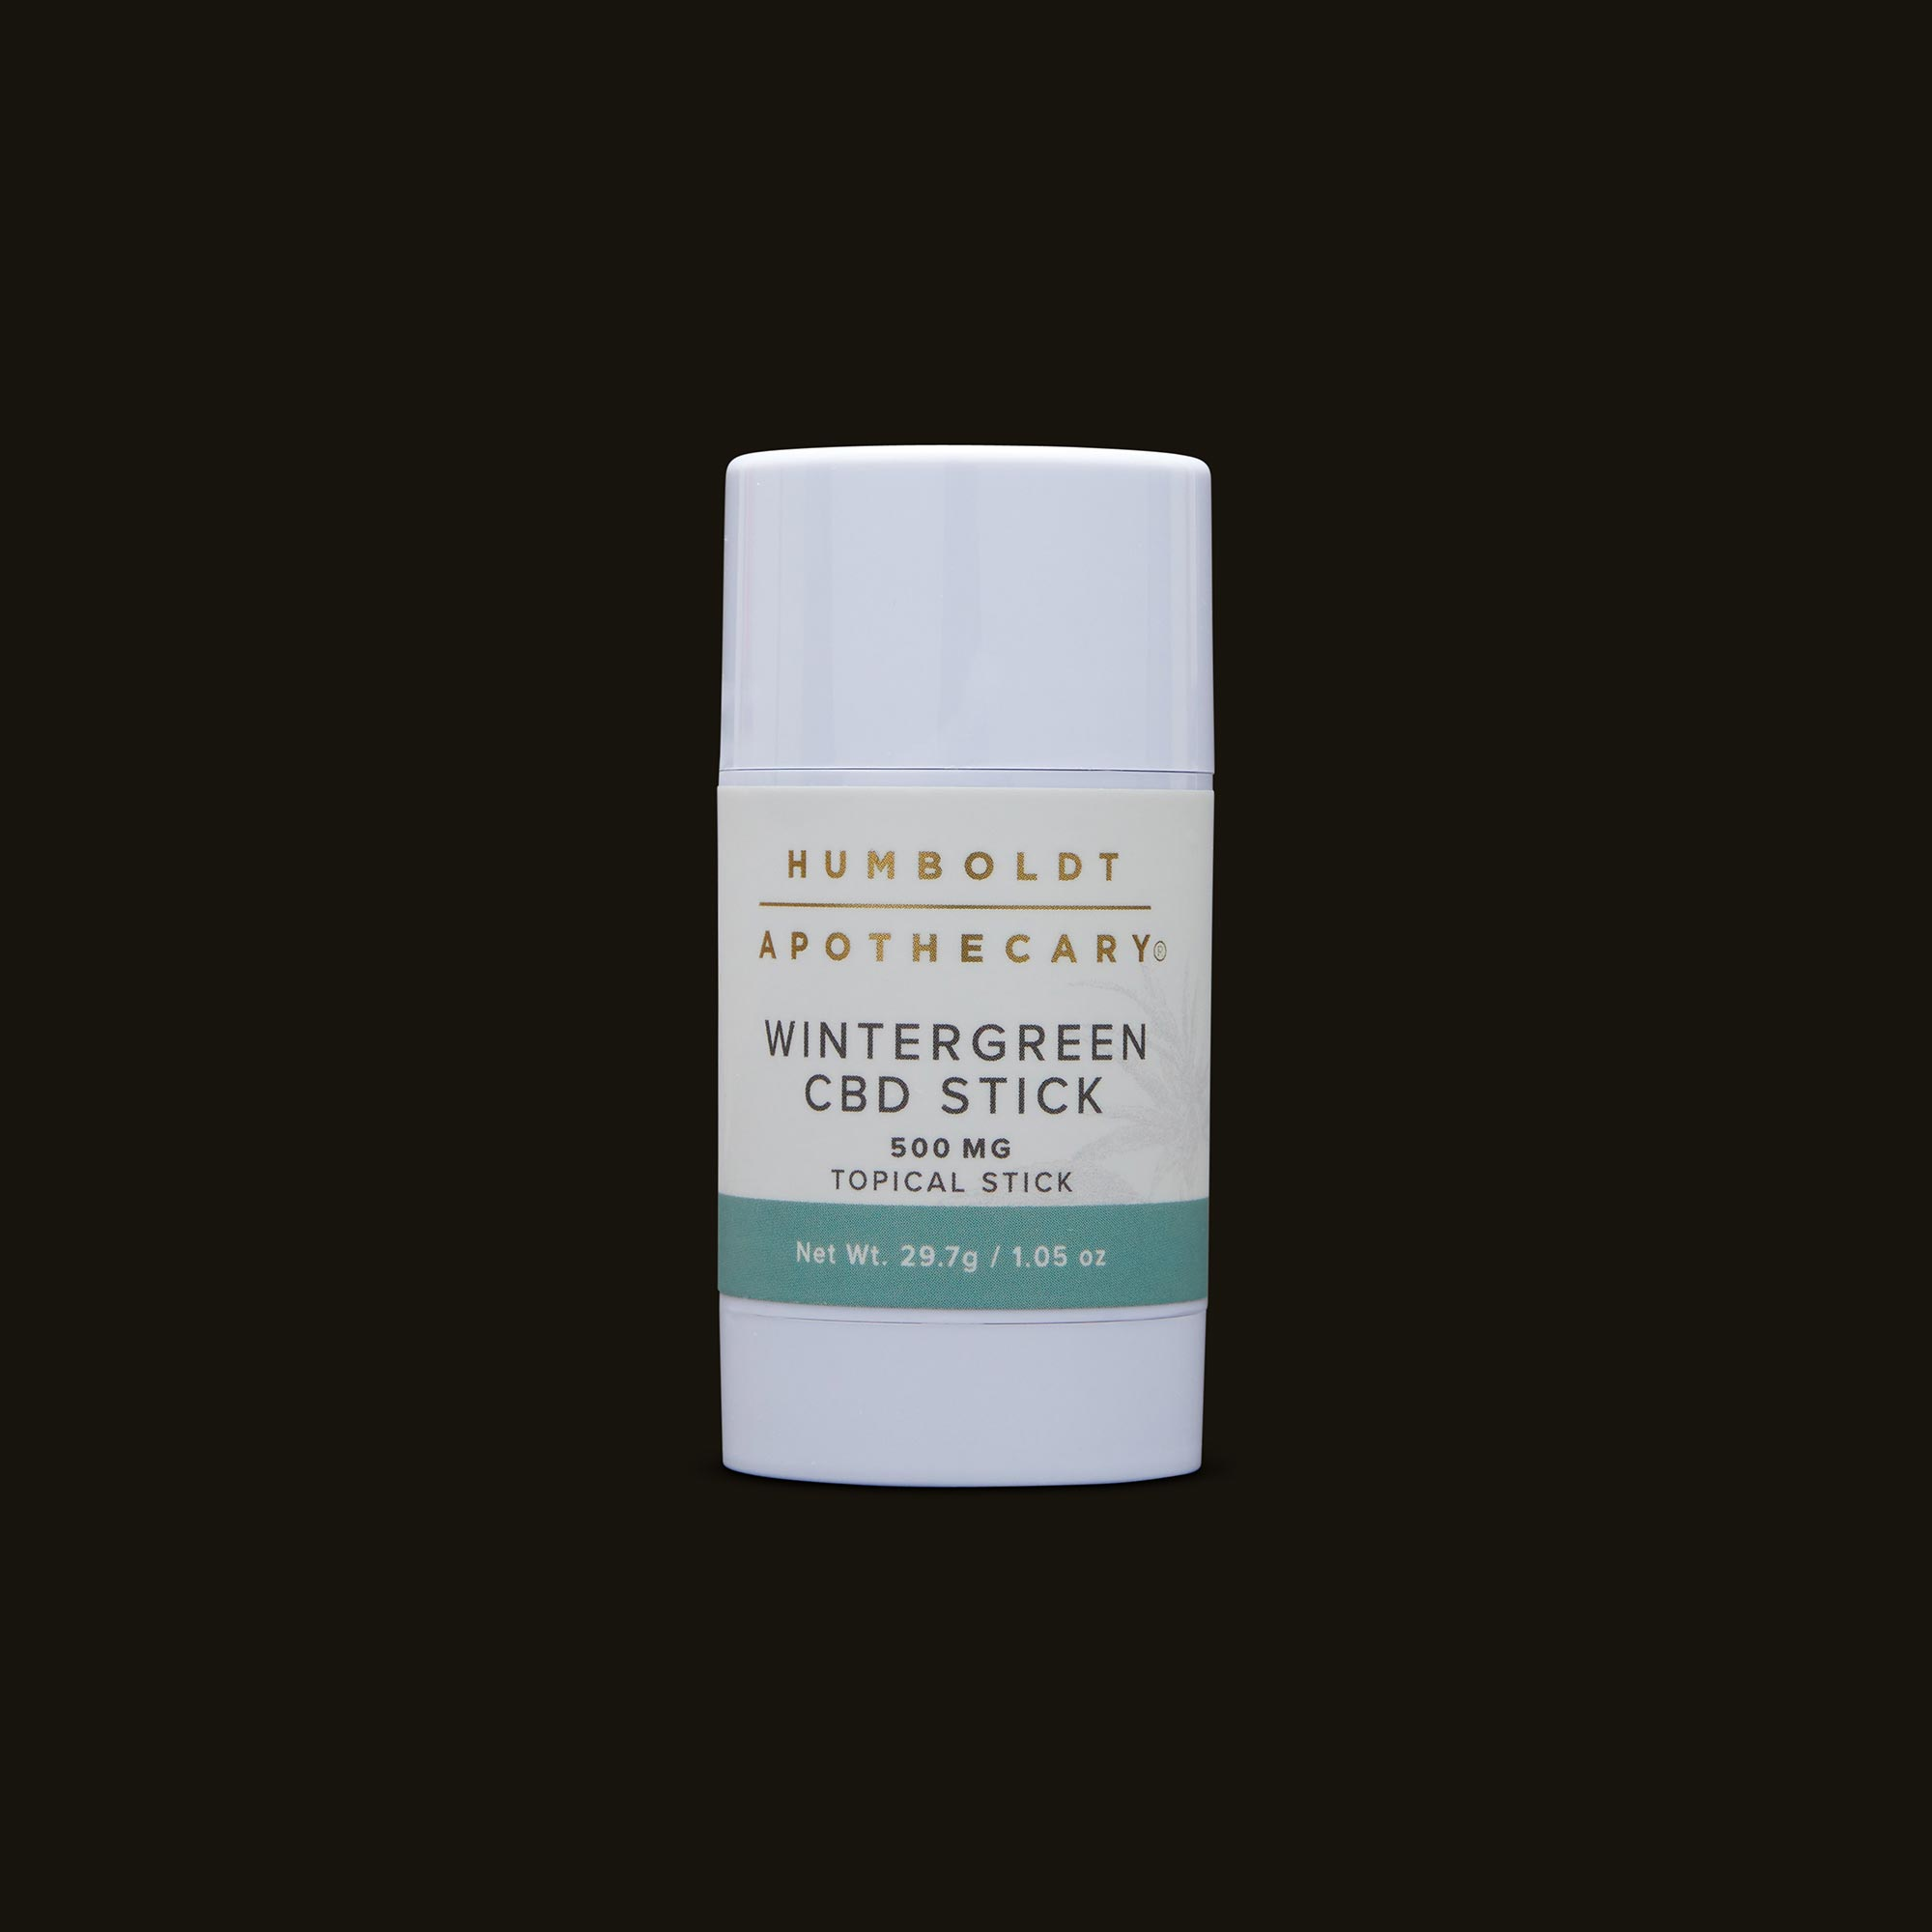 Humboldt Apothecary Wintergreen CBD Stick Front Packaging